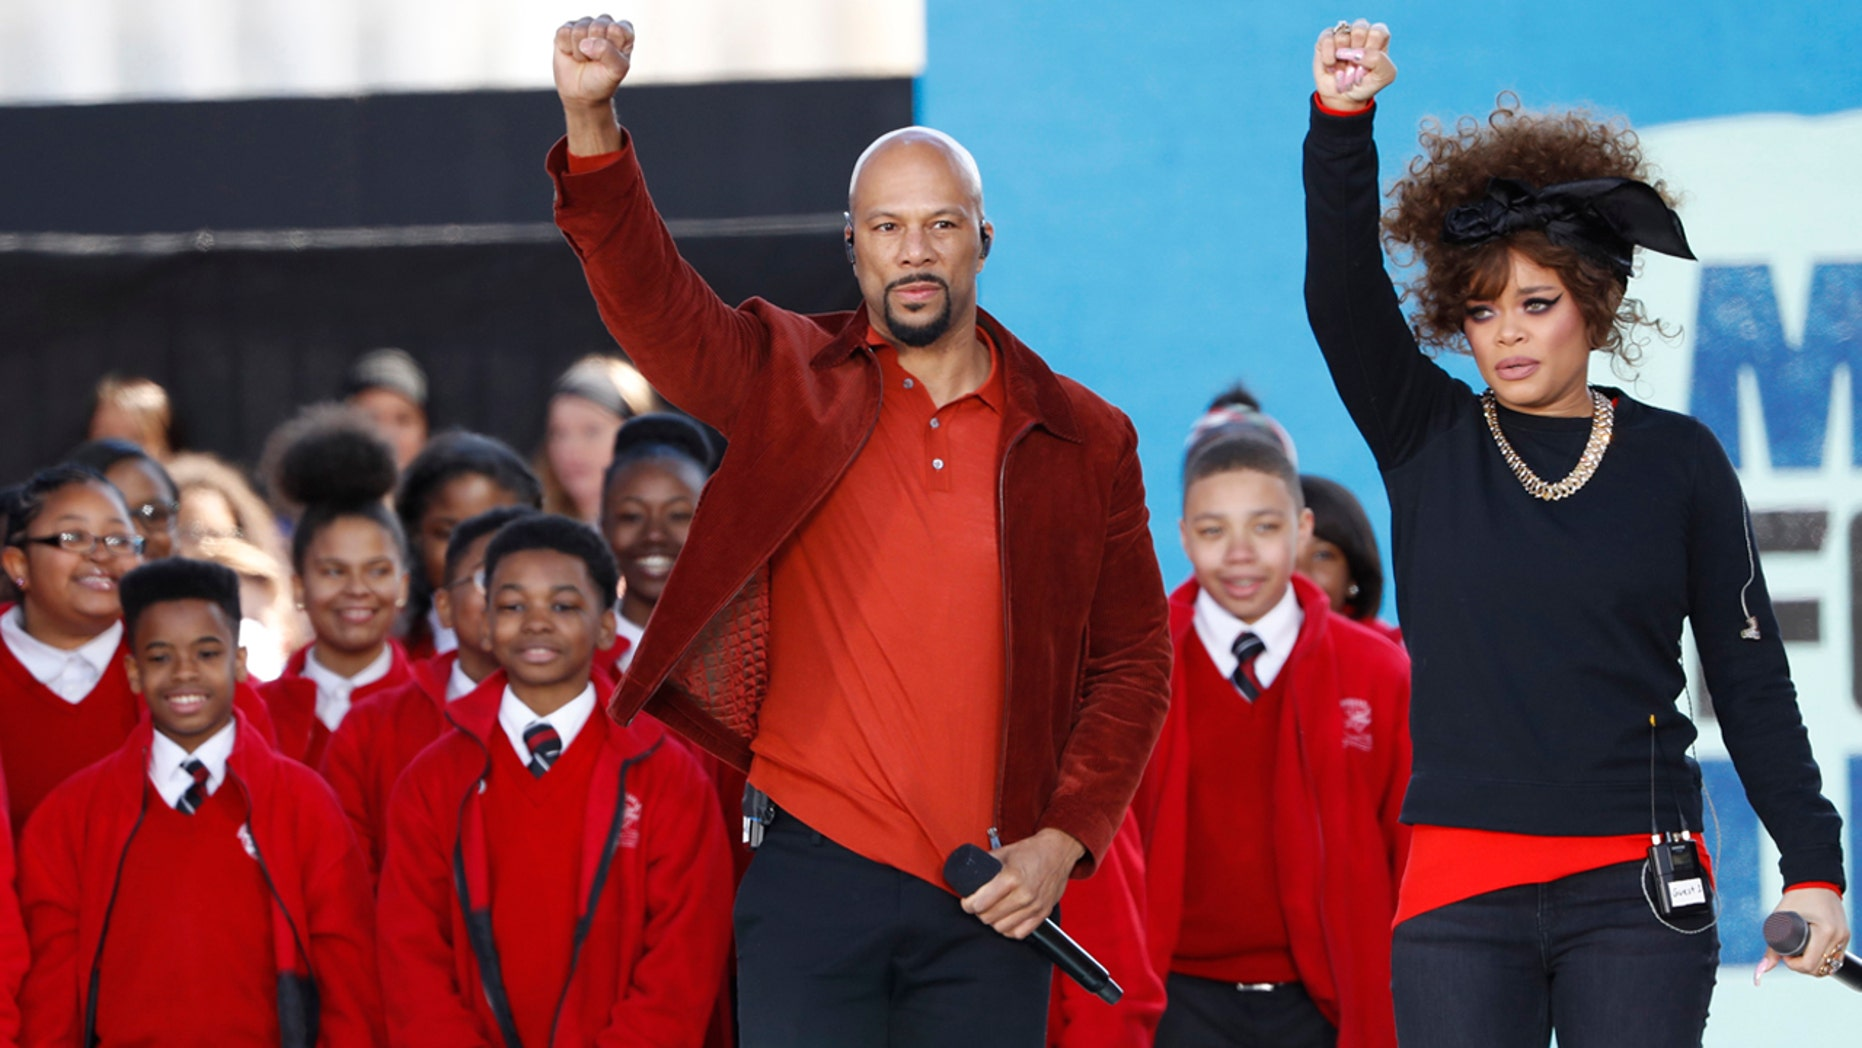 Singers Common and Andra Day perform with Baltimore's Cardinal Shehan Choir during the March for Our Lives event demanding gun control after recent school shootings at a rally in Washington, D.C., March 24, 2018.